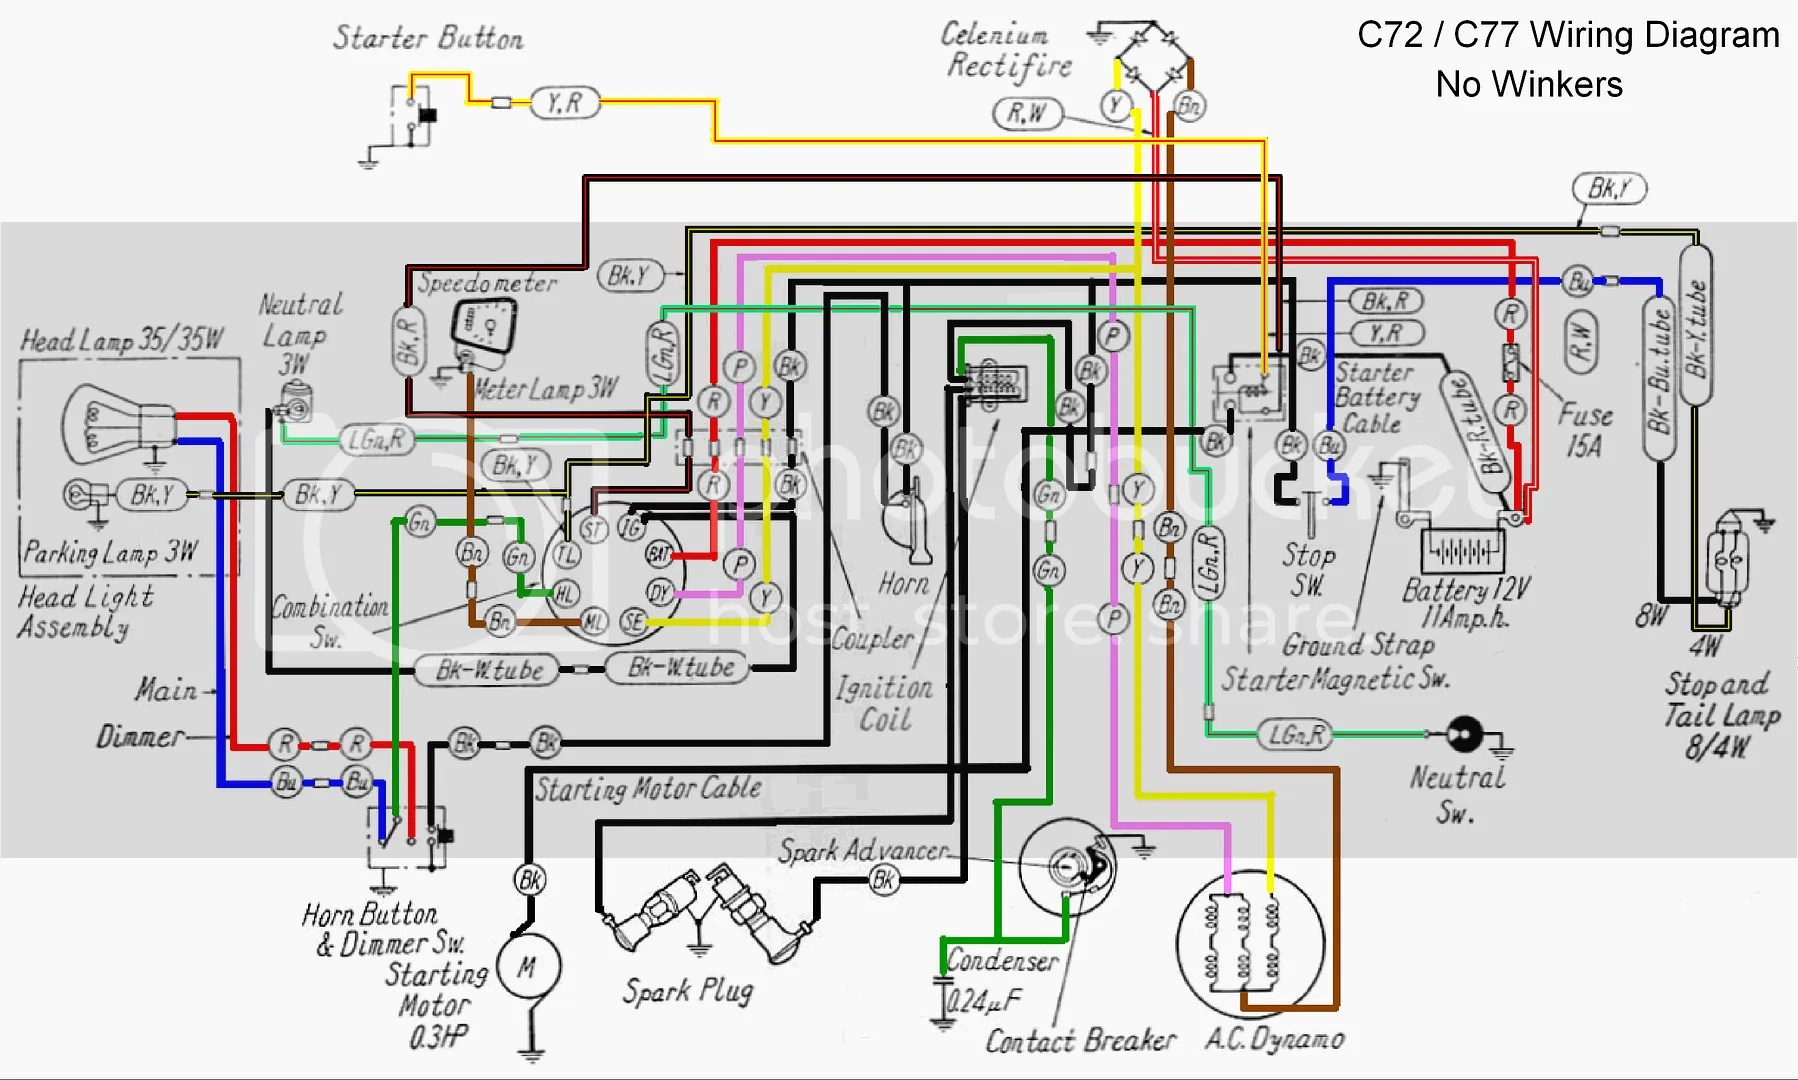 hight resolution of honda305 com forum view topic ca77 wiring diagram with andi was goofing off at work one